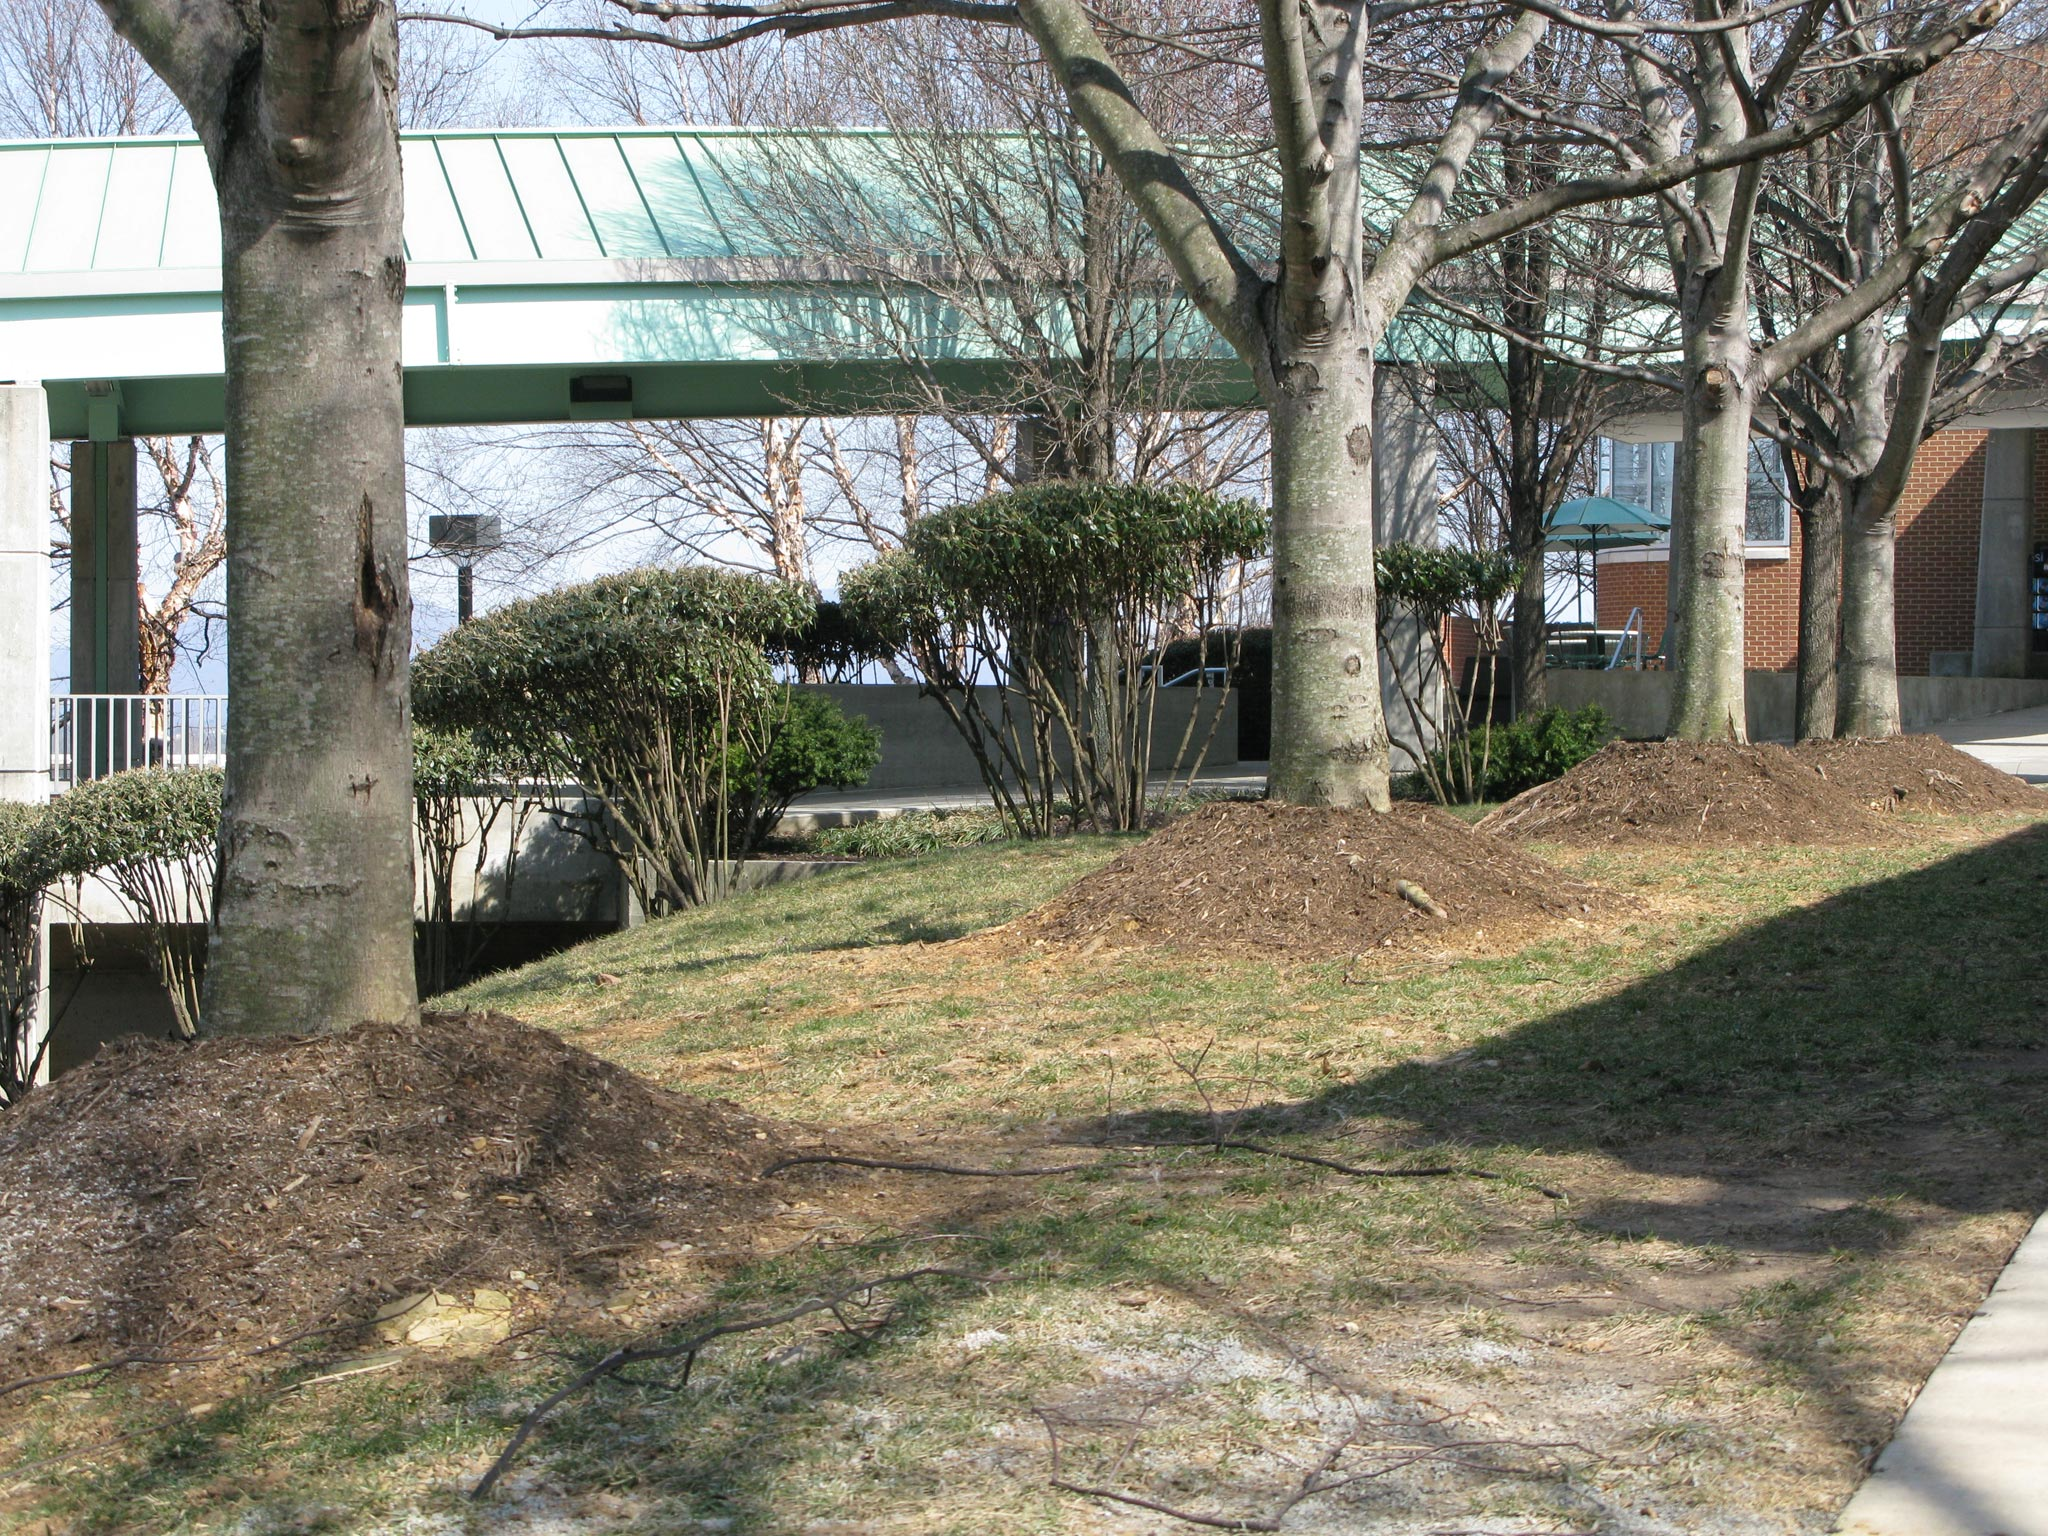 too much mulch - Five Common Tree Care Mistakes on Commercial Properties